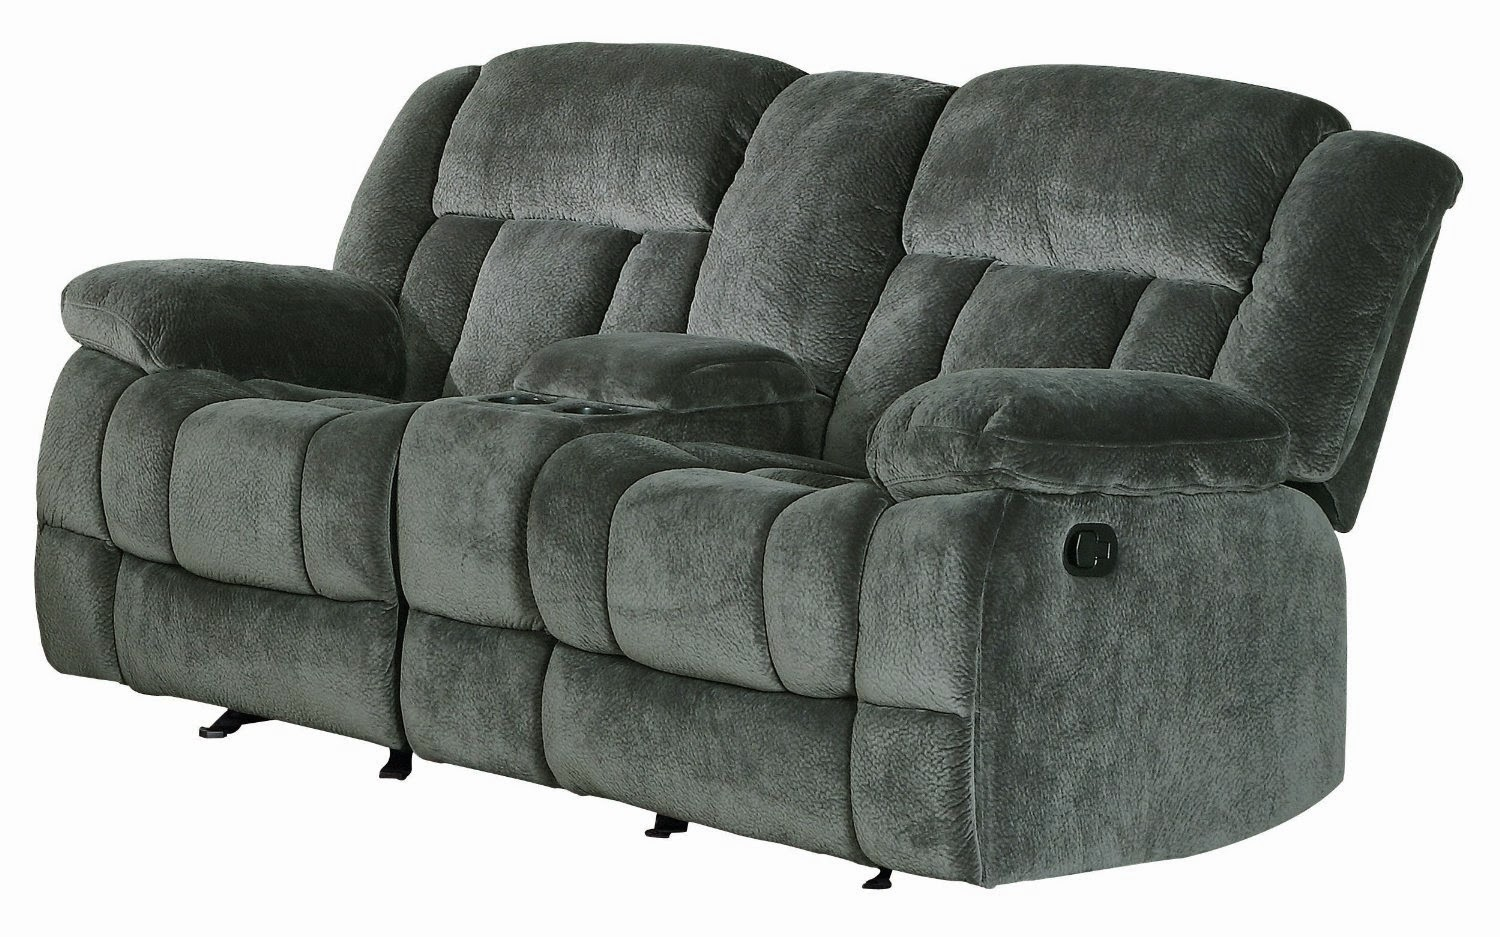 Where Is The Best Place To Buy Recliner Sofa: 2 Seat ...